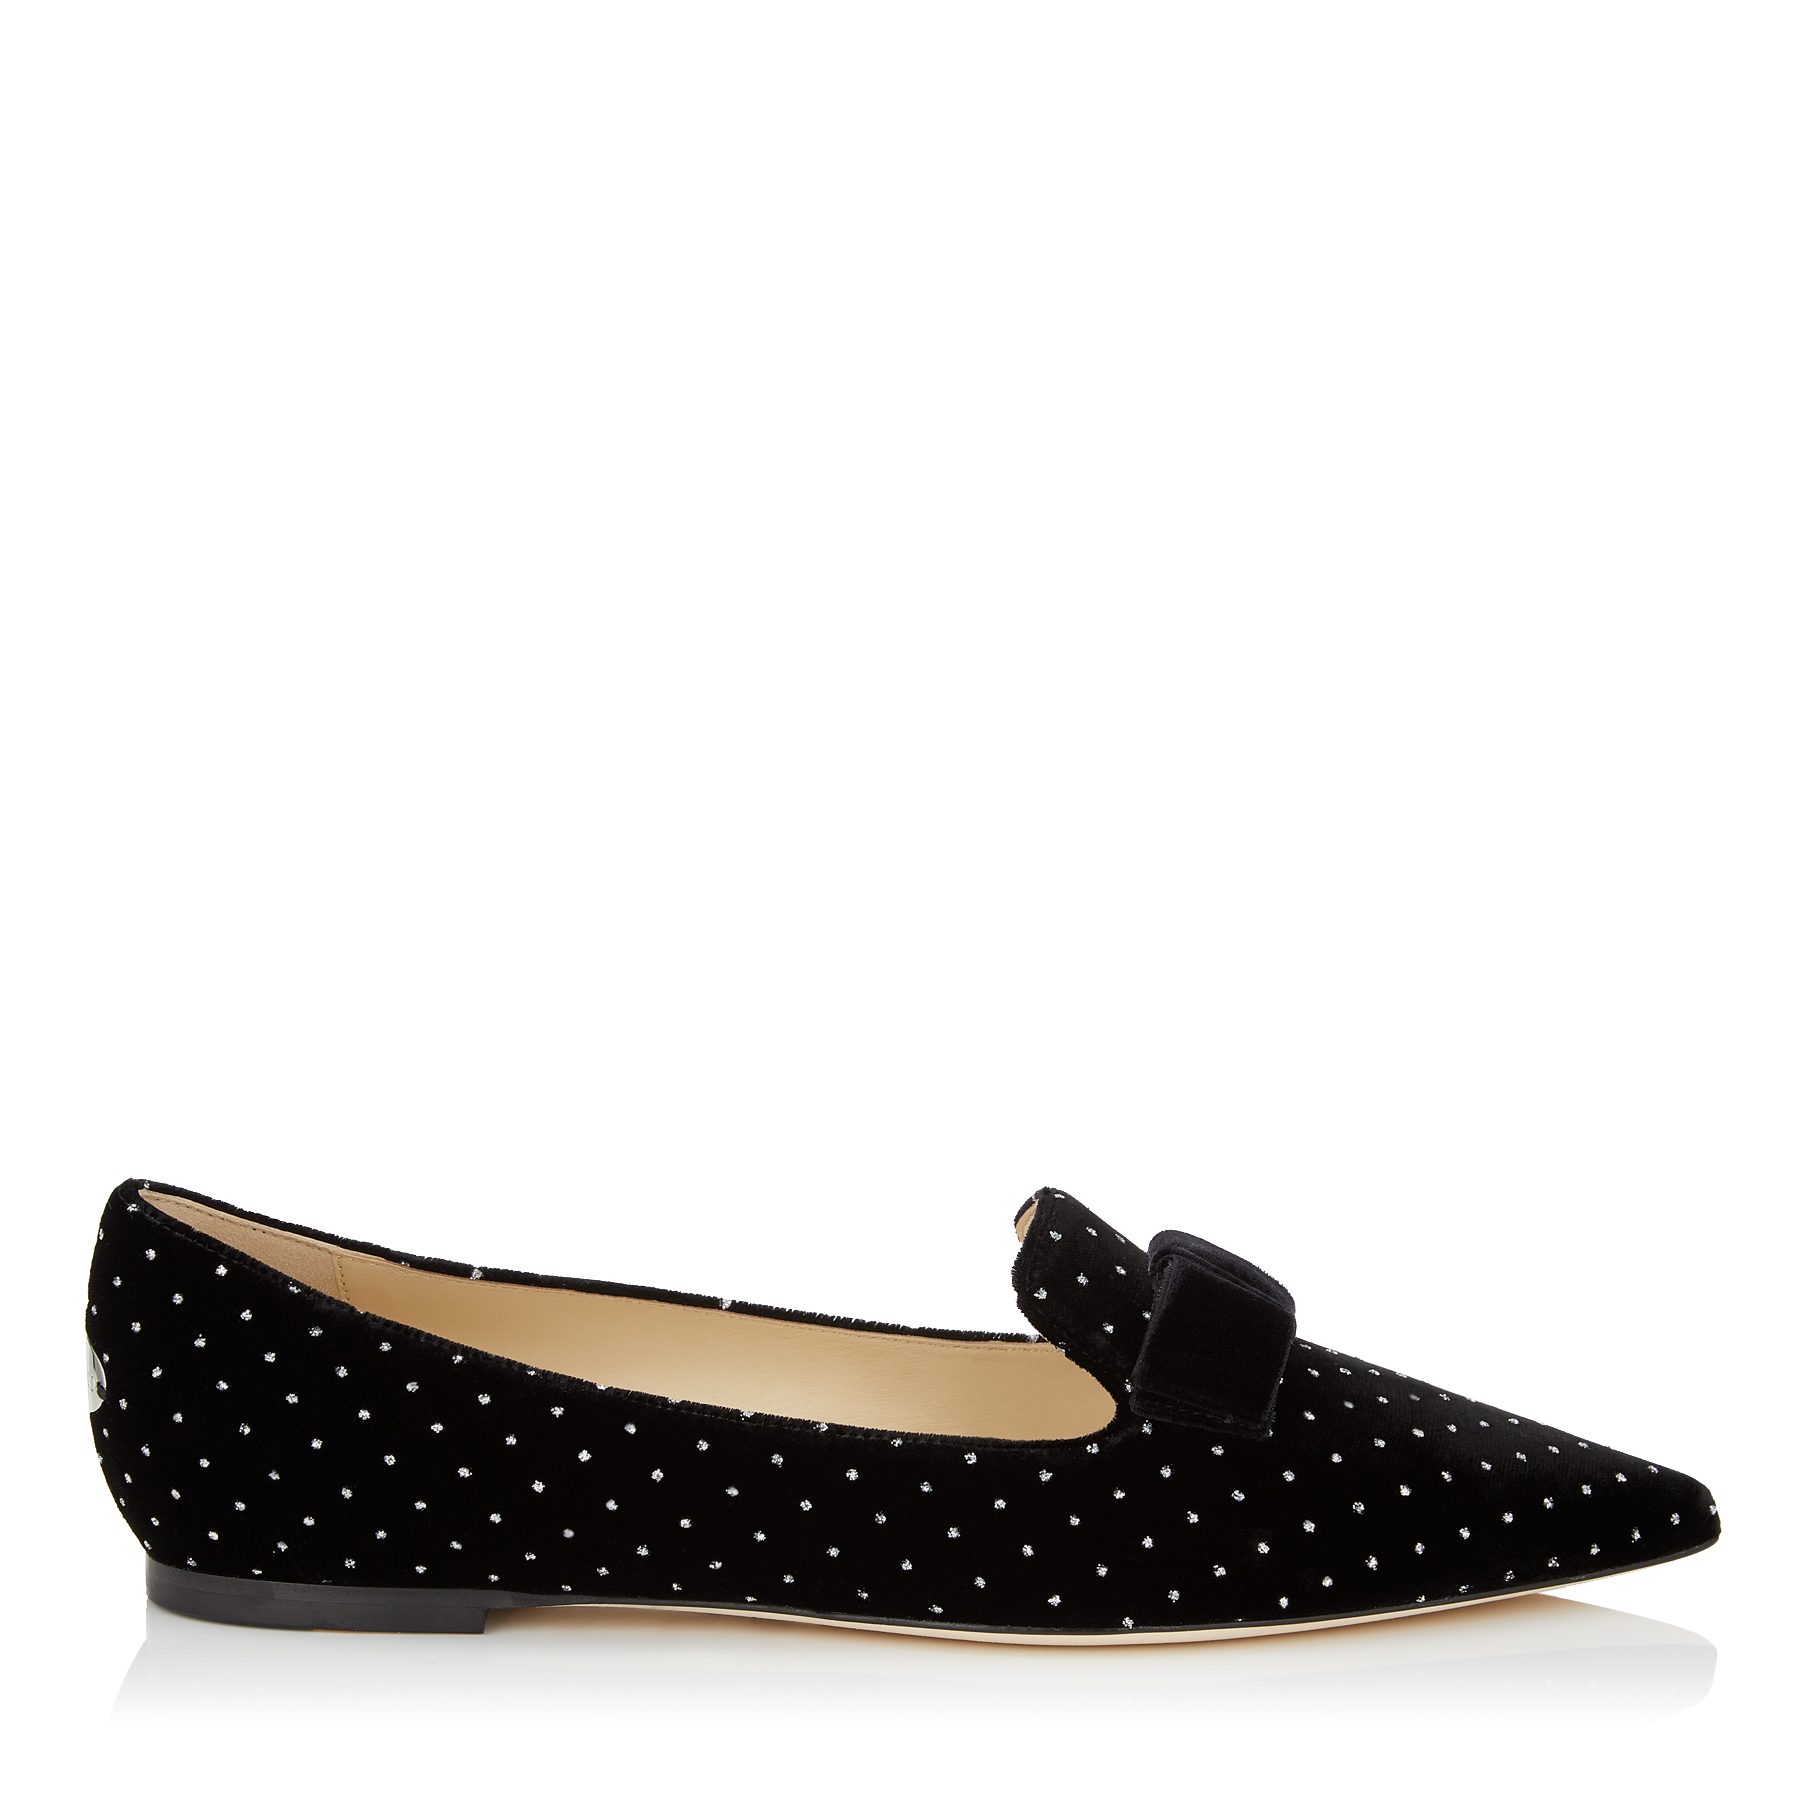 GALA Black Glitter Spotted Velvet Pointy Toe Flats with Bow Detail